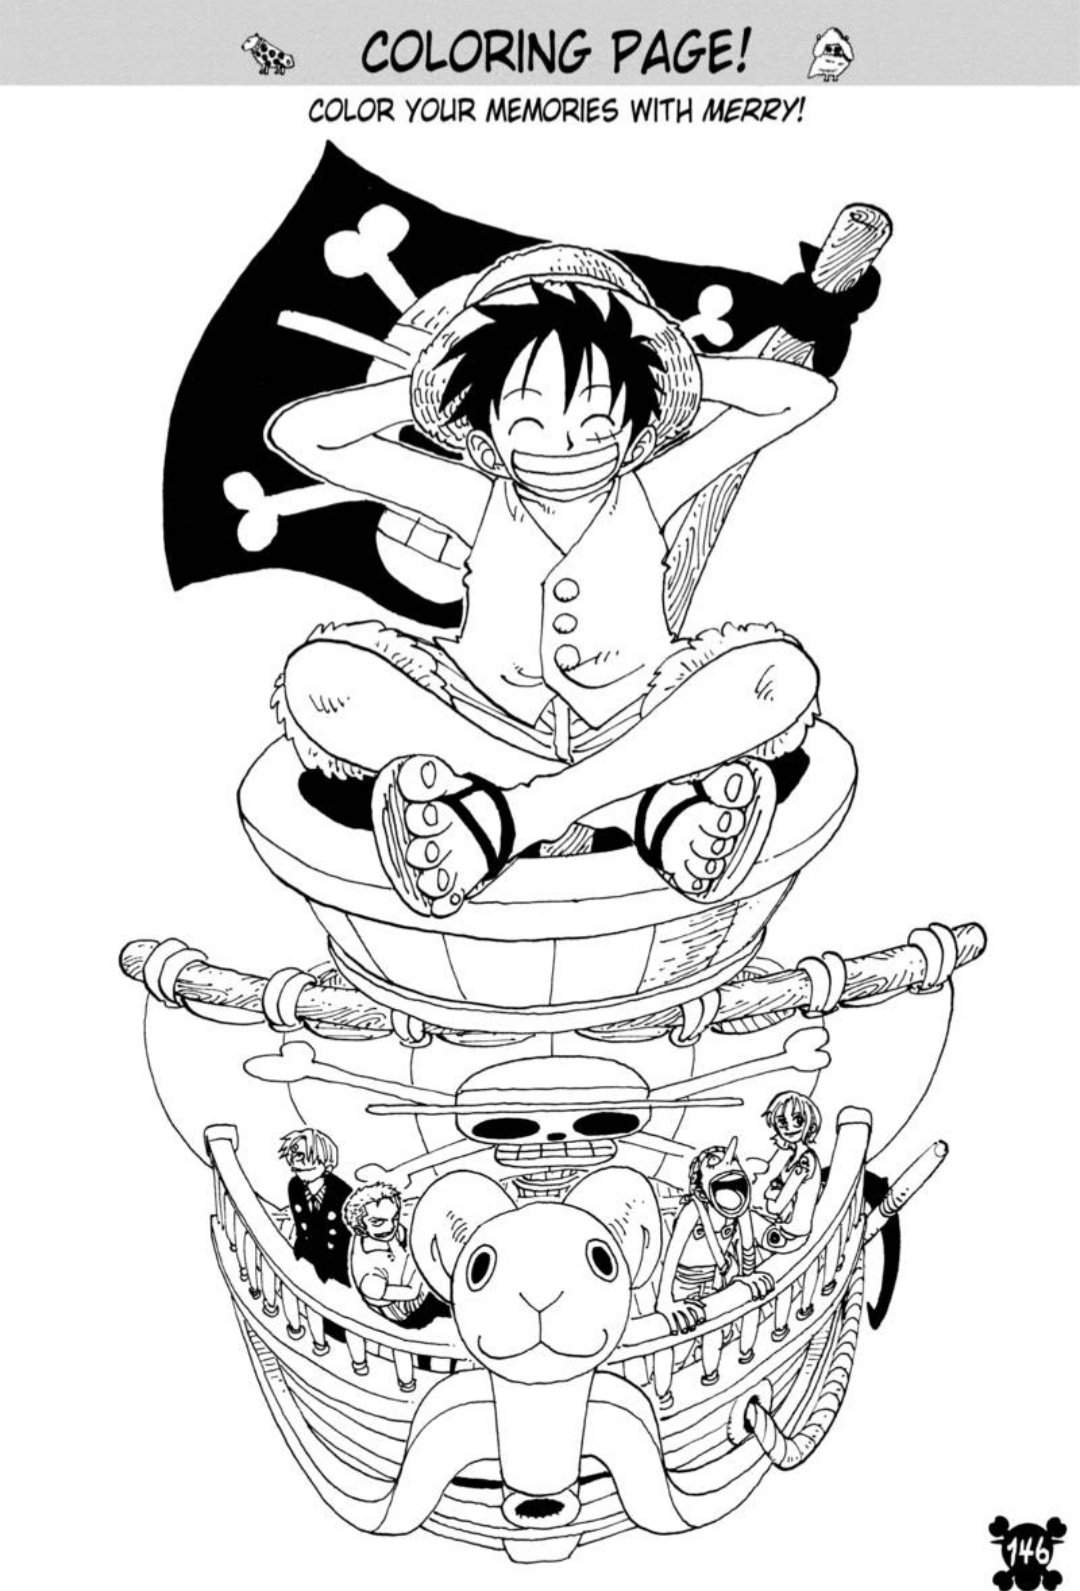 One Piece Coloring Pages : piece, coloring, pages, Coloring, Piece, Amino